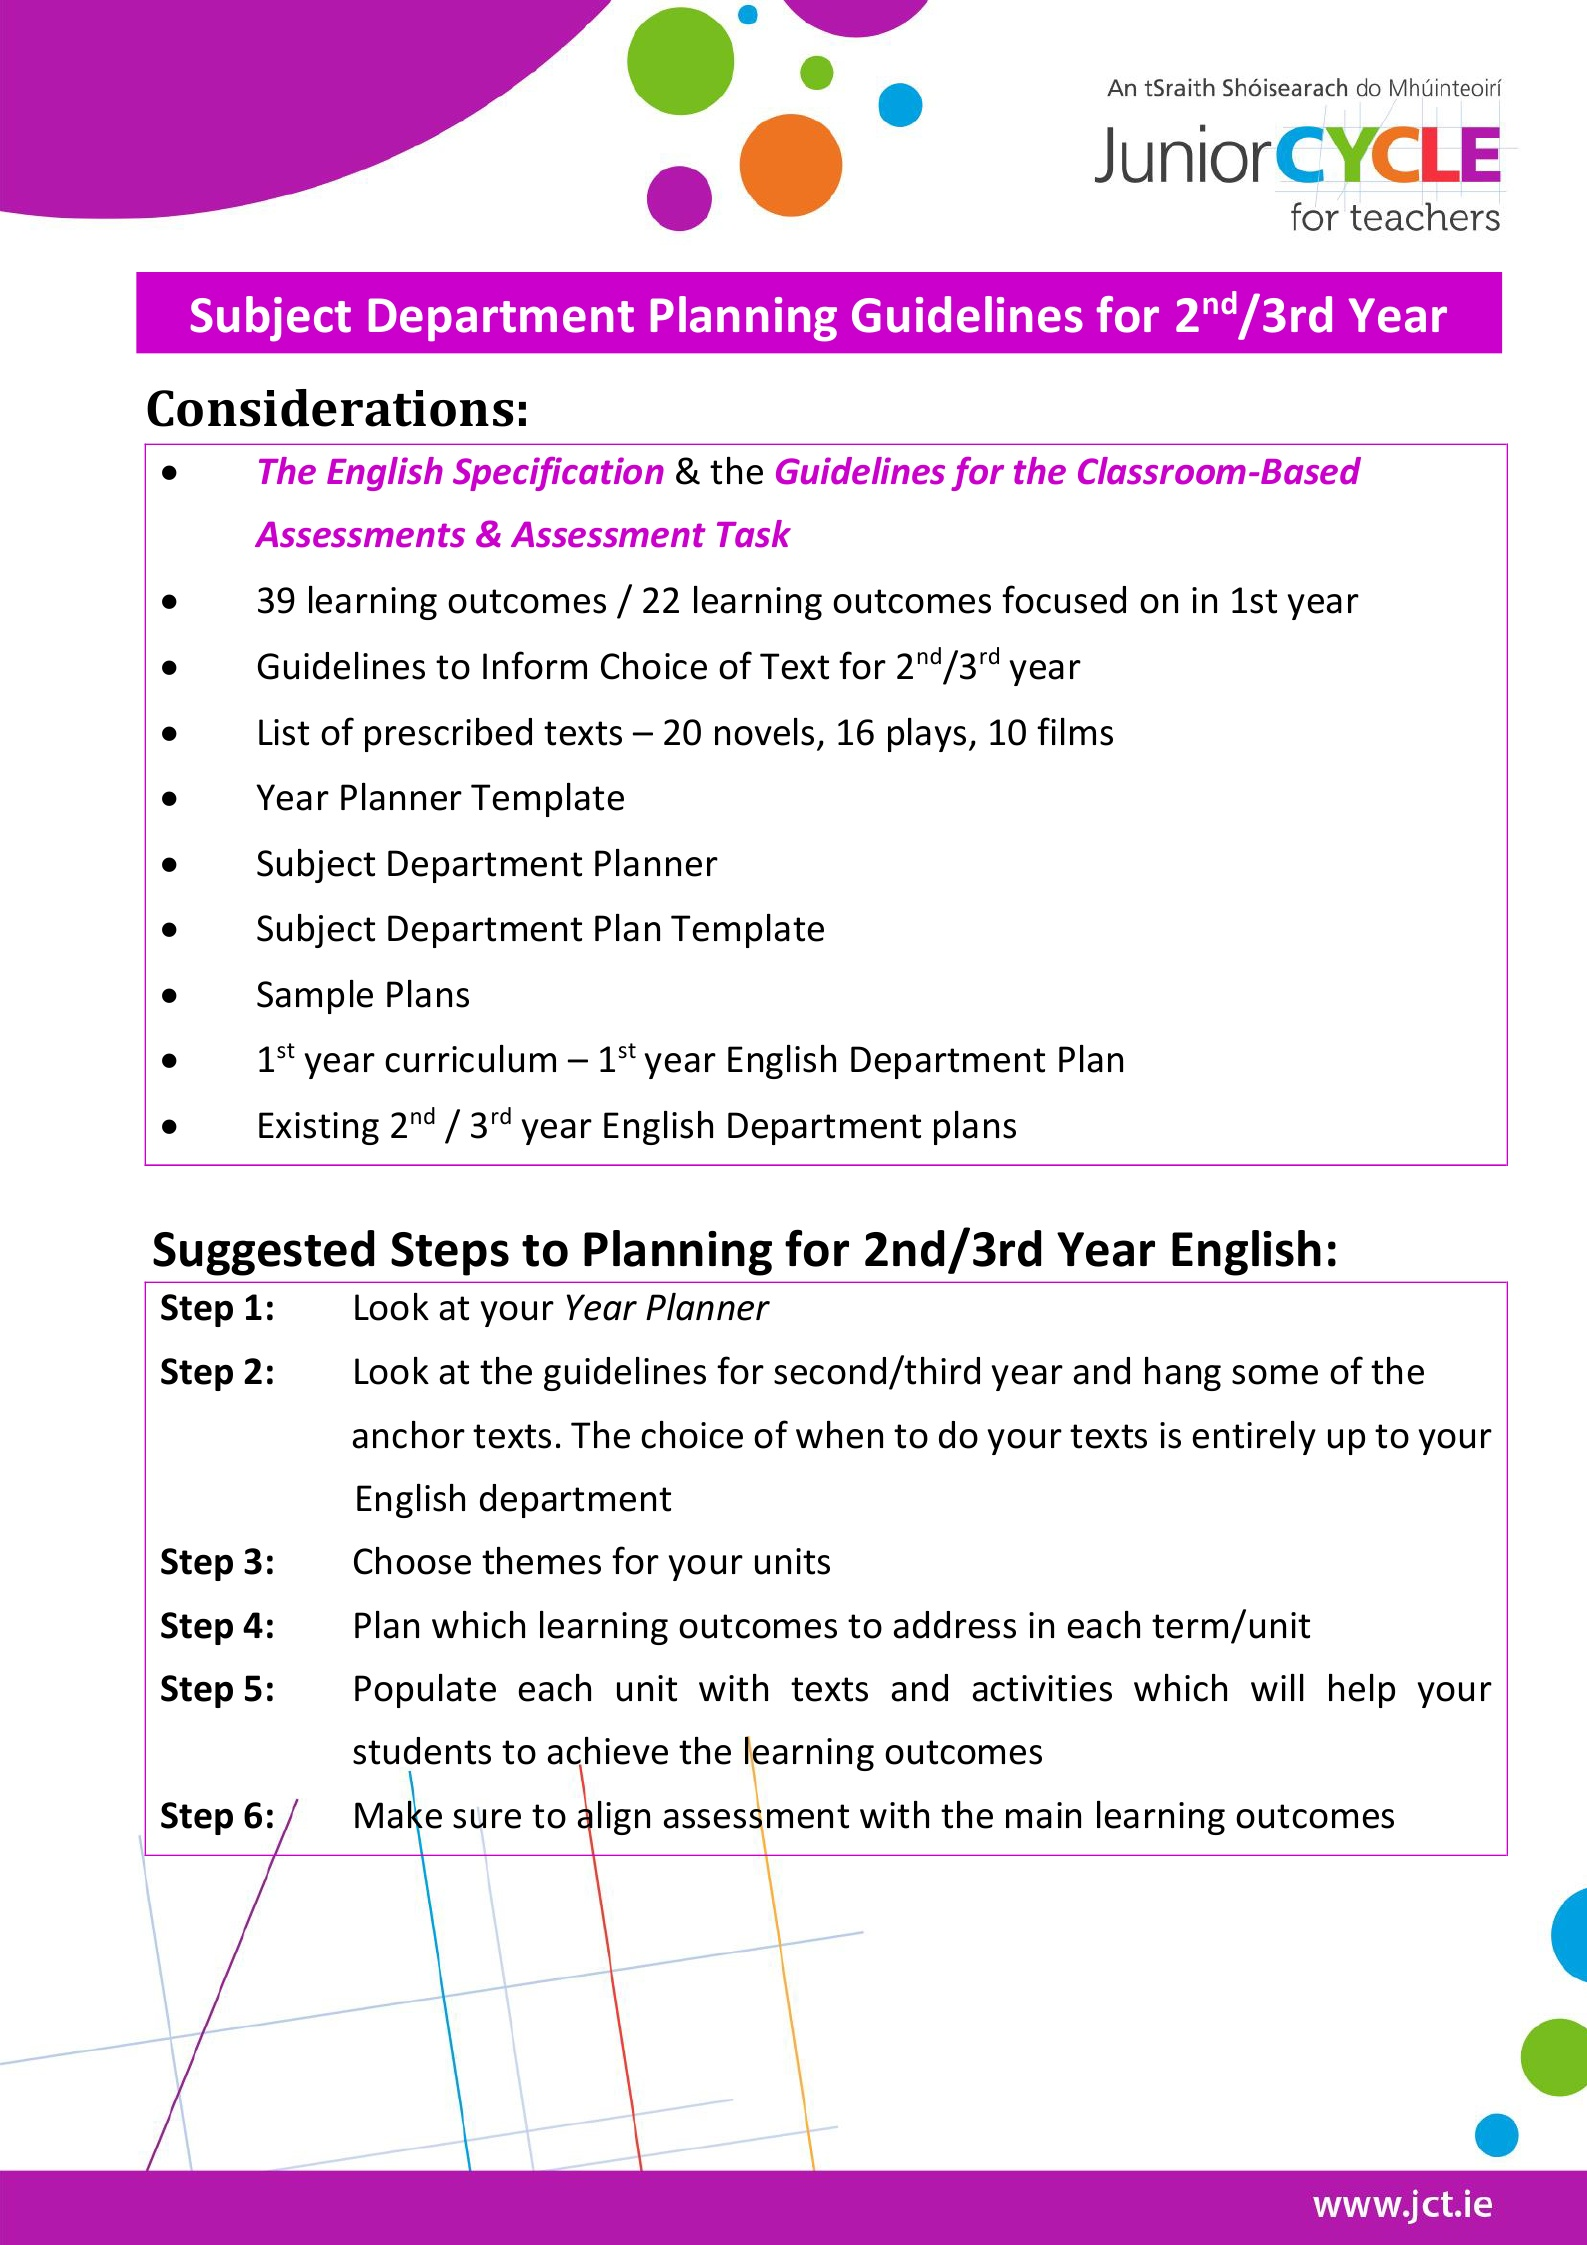 english second third year planning junior cycle for teachers jct